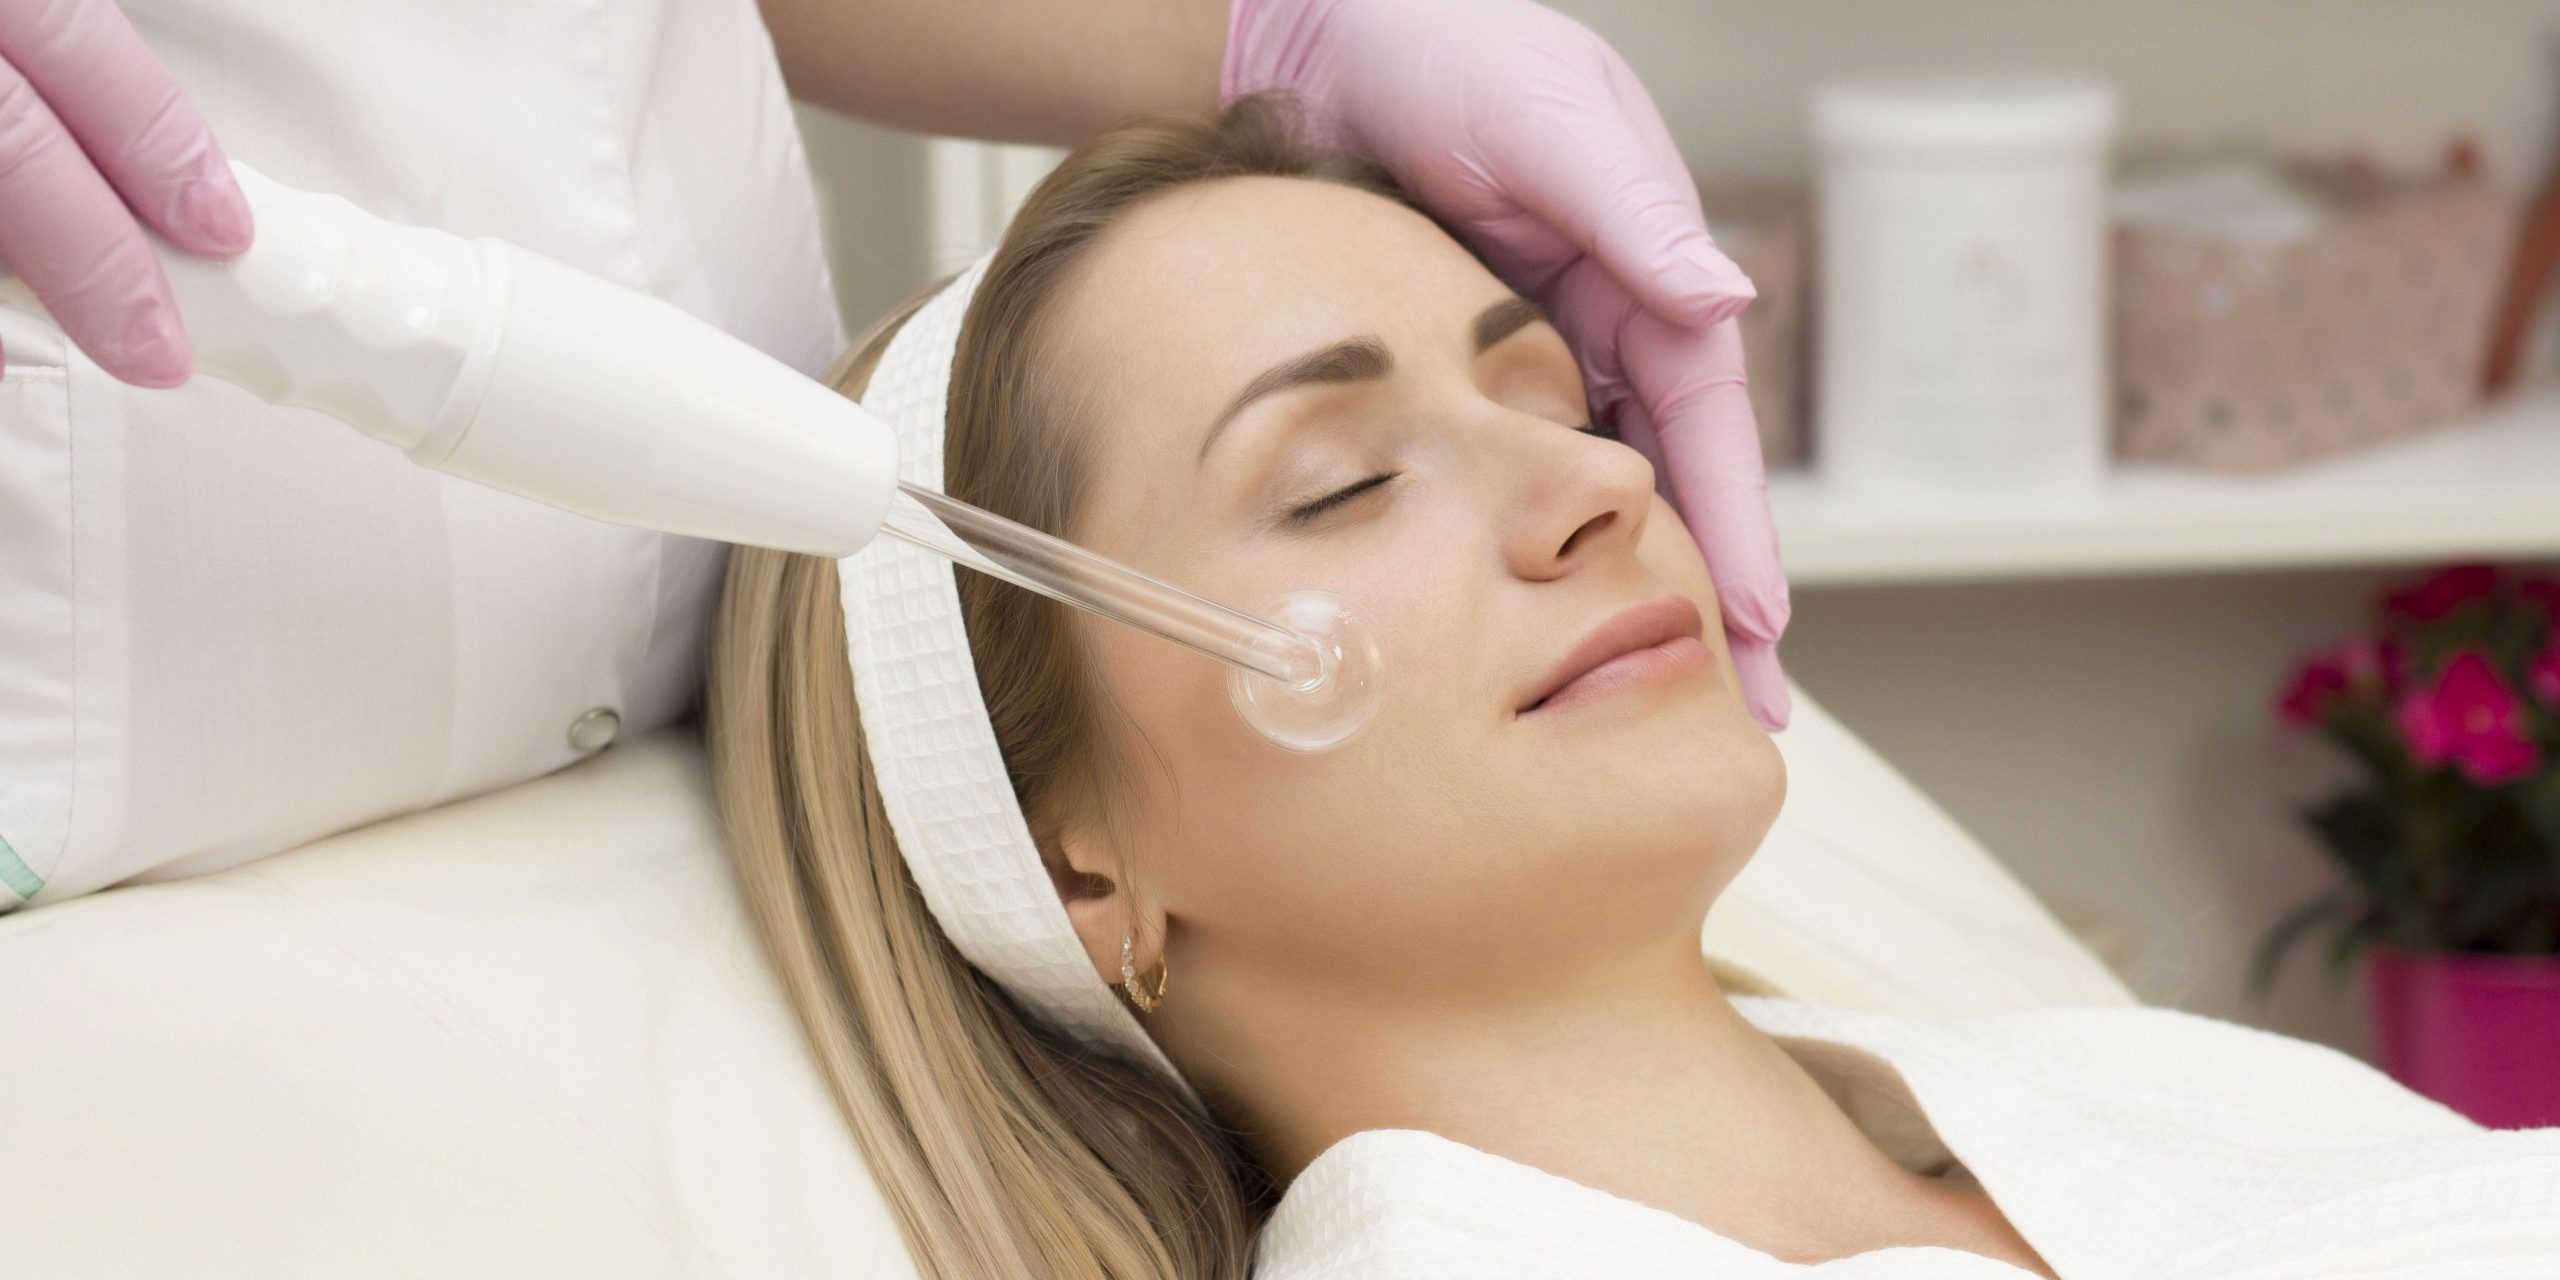 Darsonvalization of the face or rejuvenation of the face with the help of electrotherapy. Photo of darsonval for the face. Current therapy. The patient is at the beautician